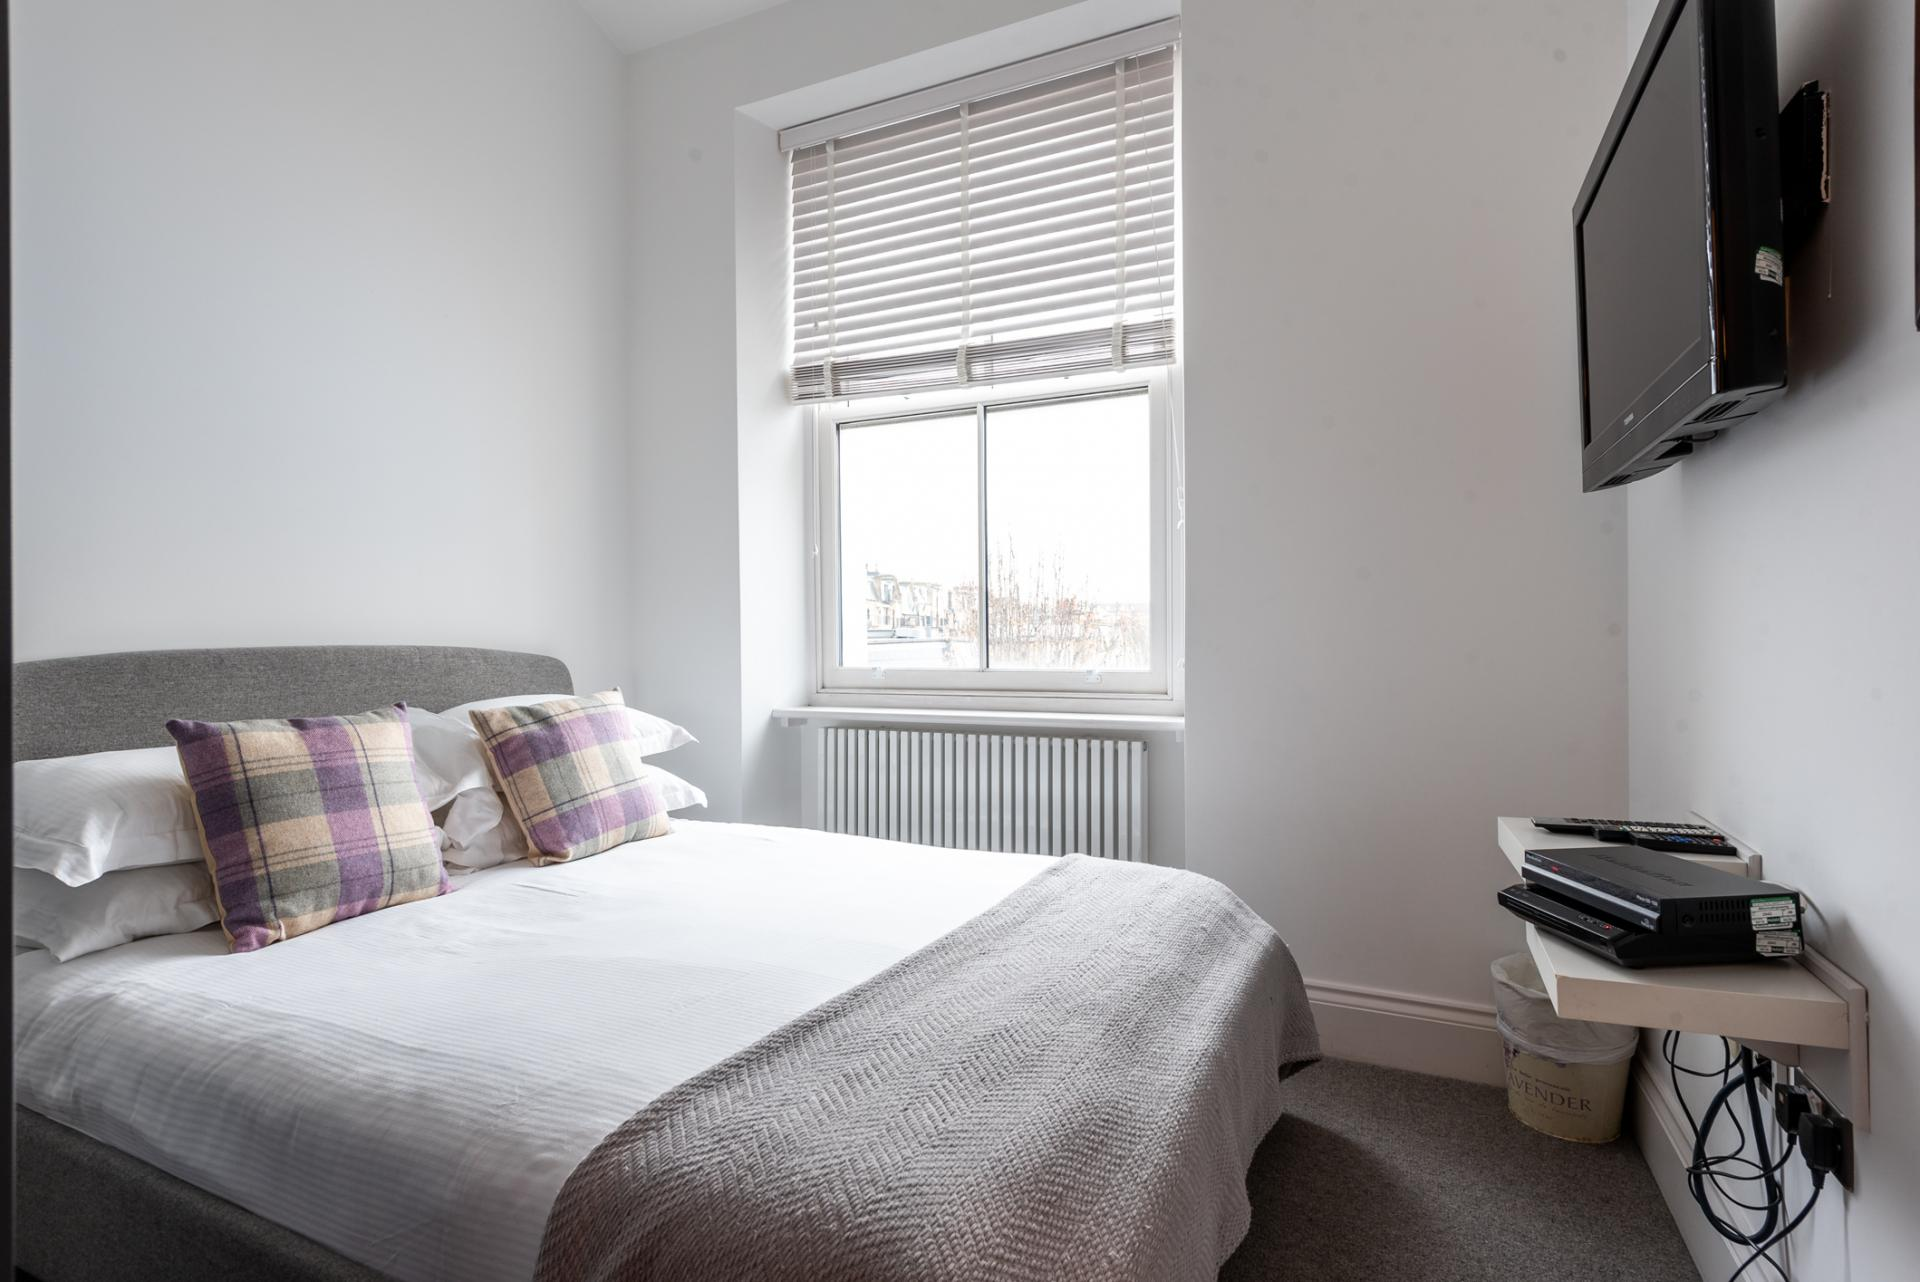 Bedding at Chelsea Green Apartments, Chelsea, London - Citybase Apartments